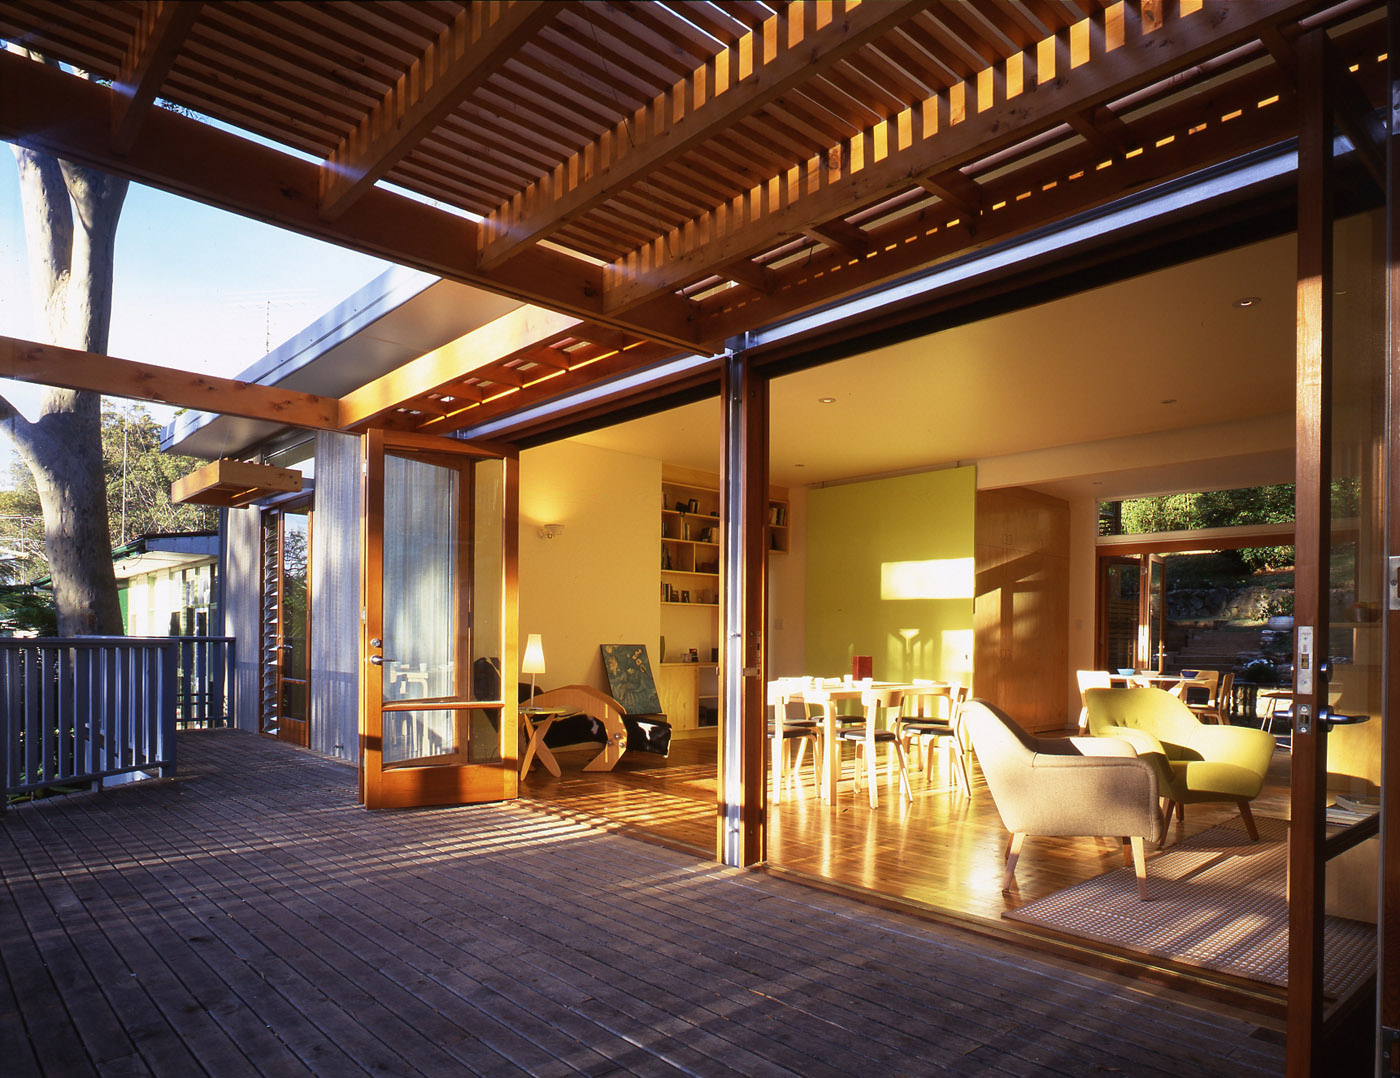 Avalon Beach House by Sydney award winning residential architecture firm Sam Crawford Architects. Renovated deck with timber slat pergola and open interior connected to its surroundings.